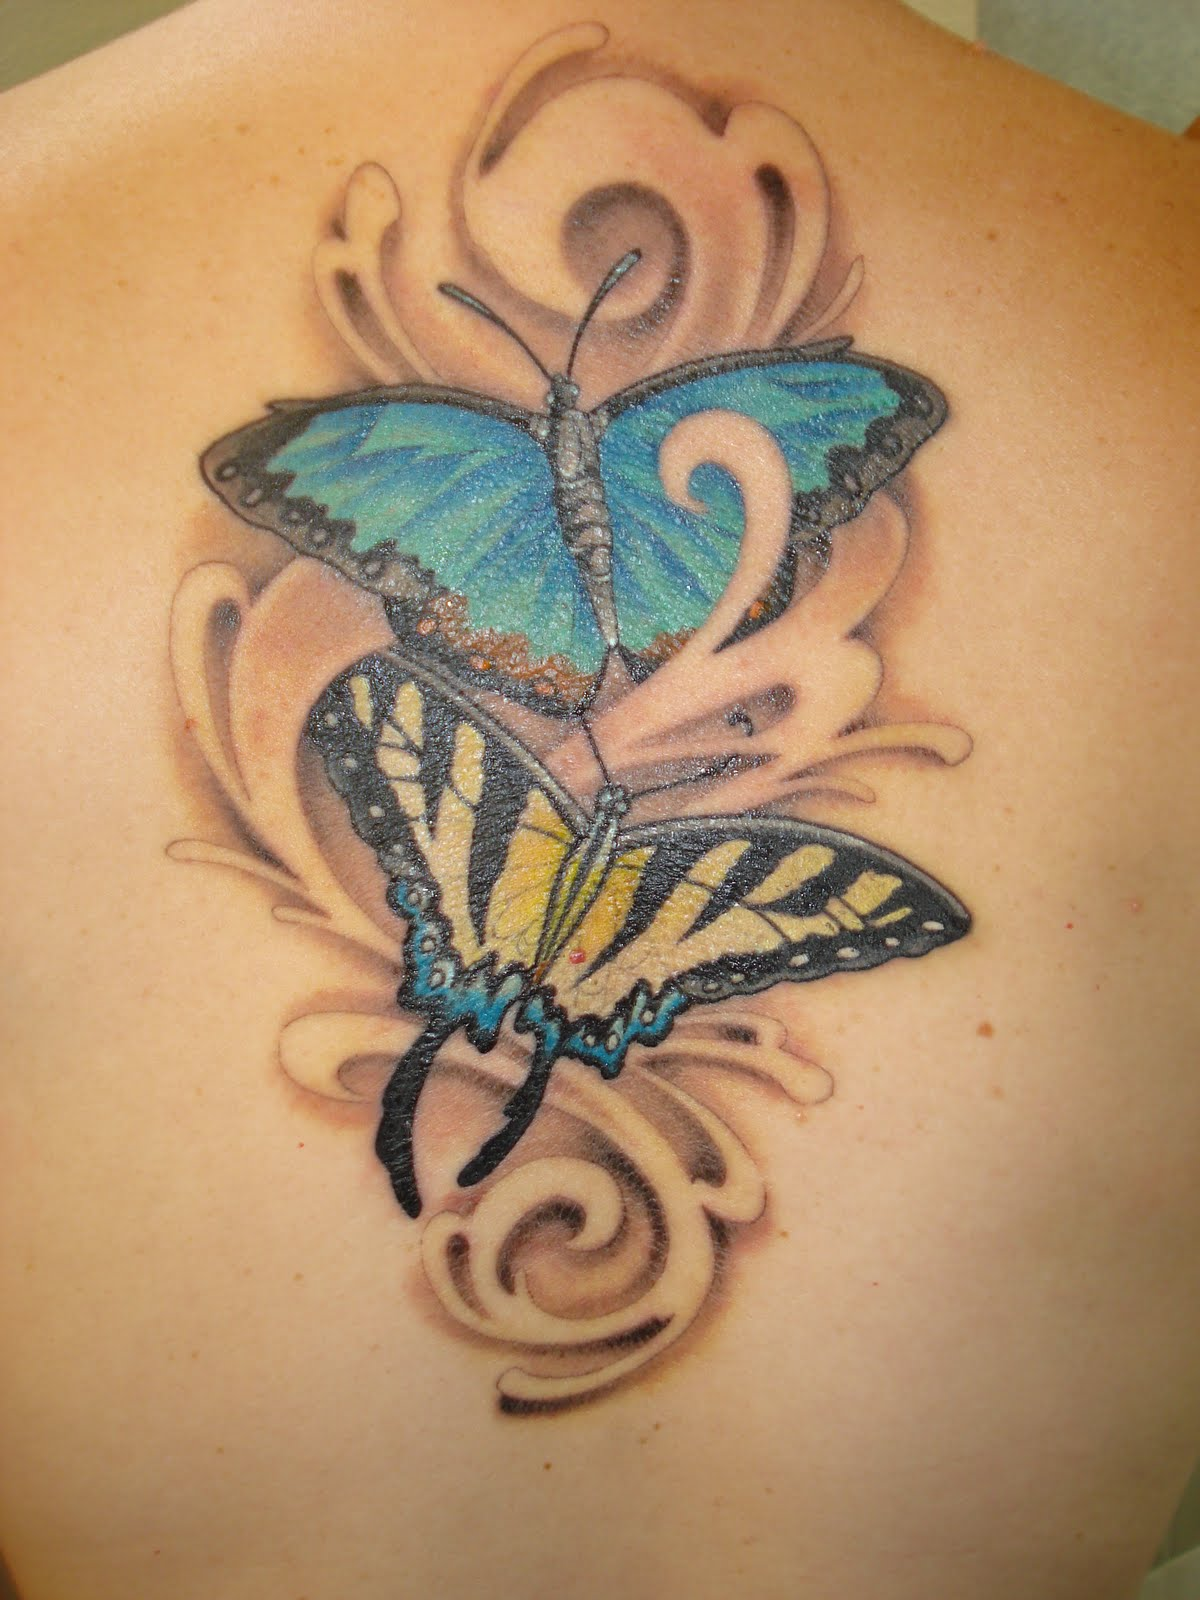 sweetkisses shop butterfly tattoos. Black Bedroom Furniture Sets. Home Design Ideas